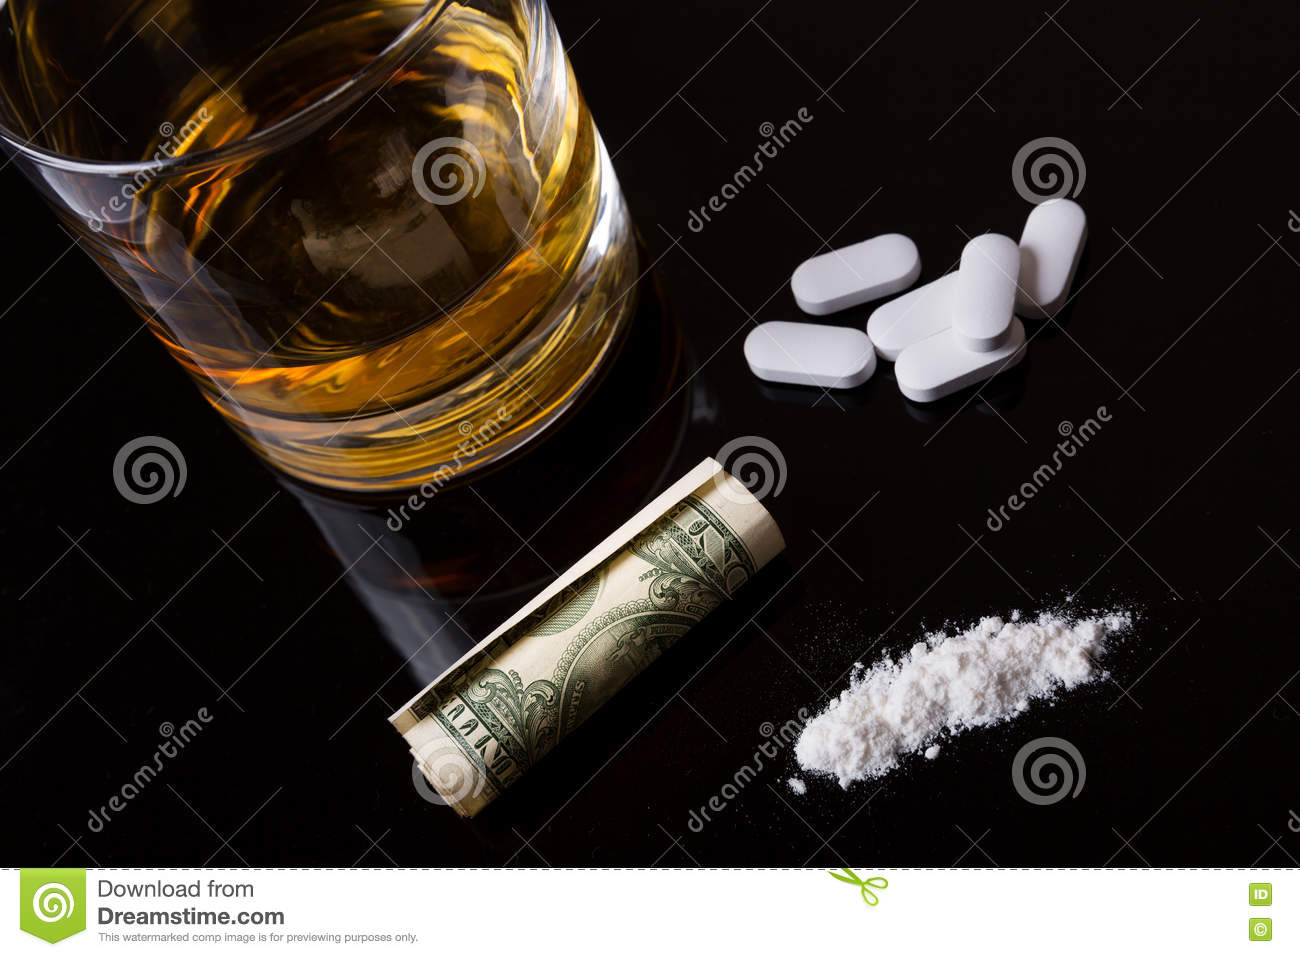 Alcohol, drugs and cocaine